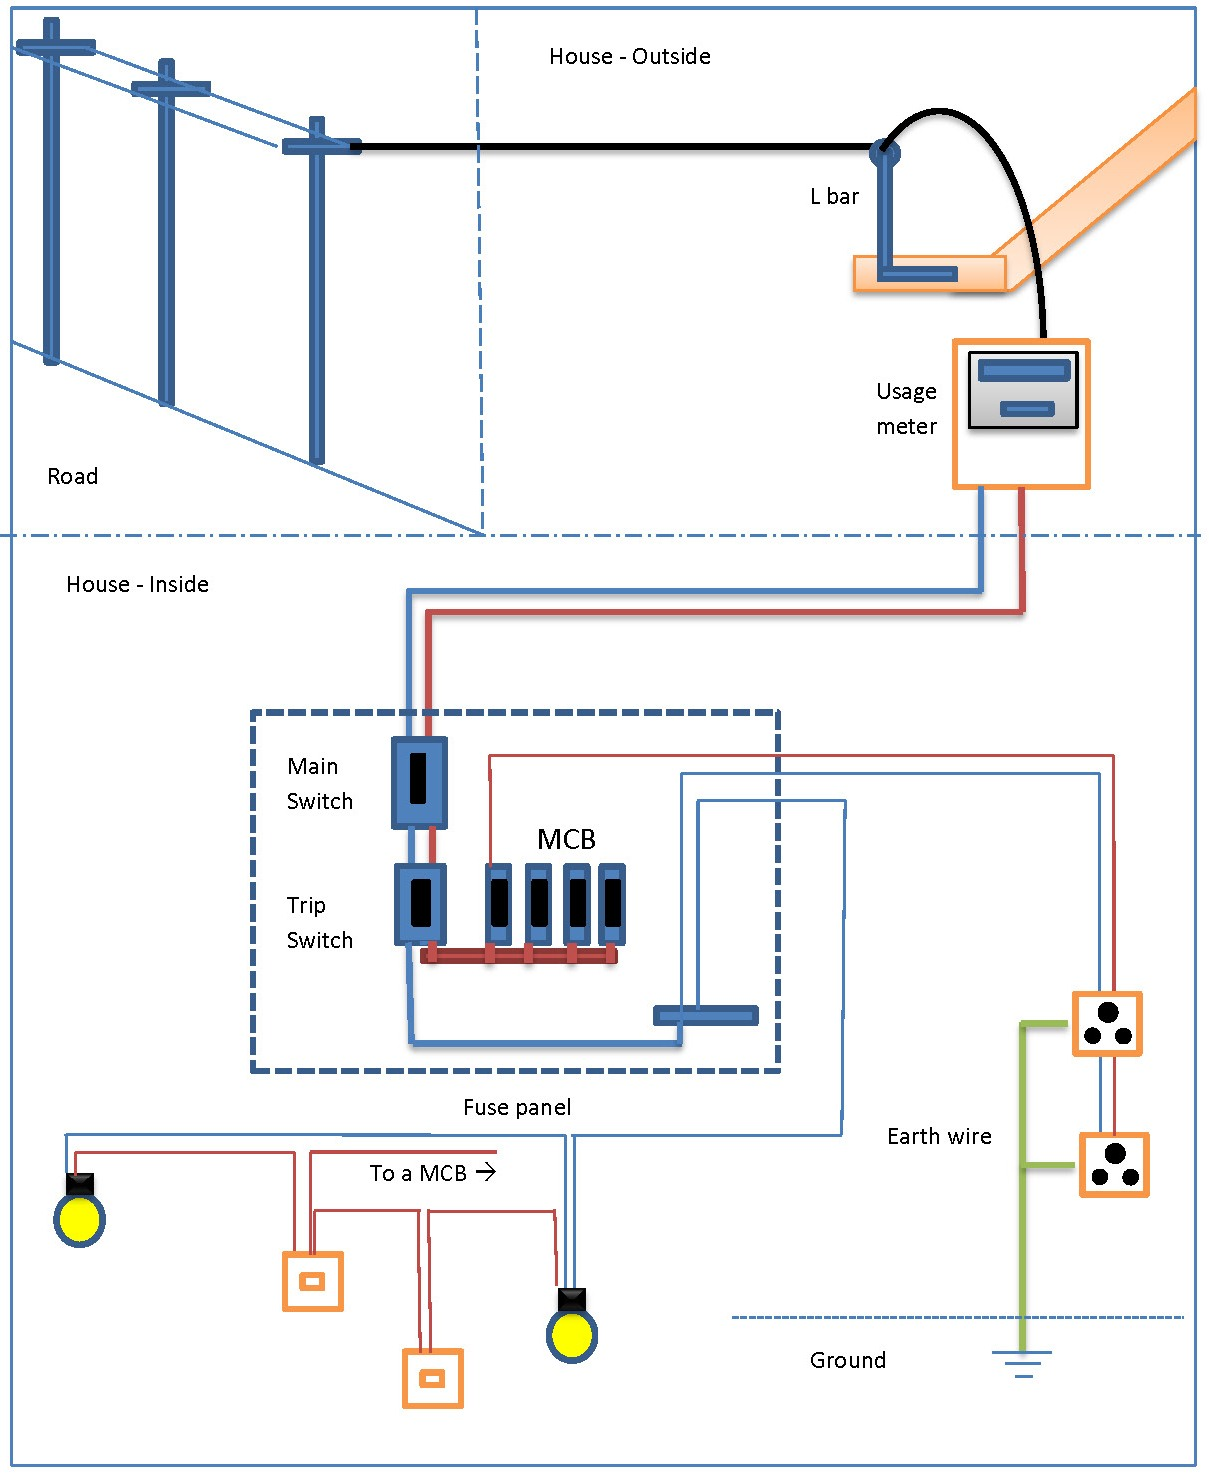 house wiring diagram sri lanka days of my life: house wiring diagram sri lanka house wiring diagram com #7